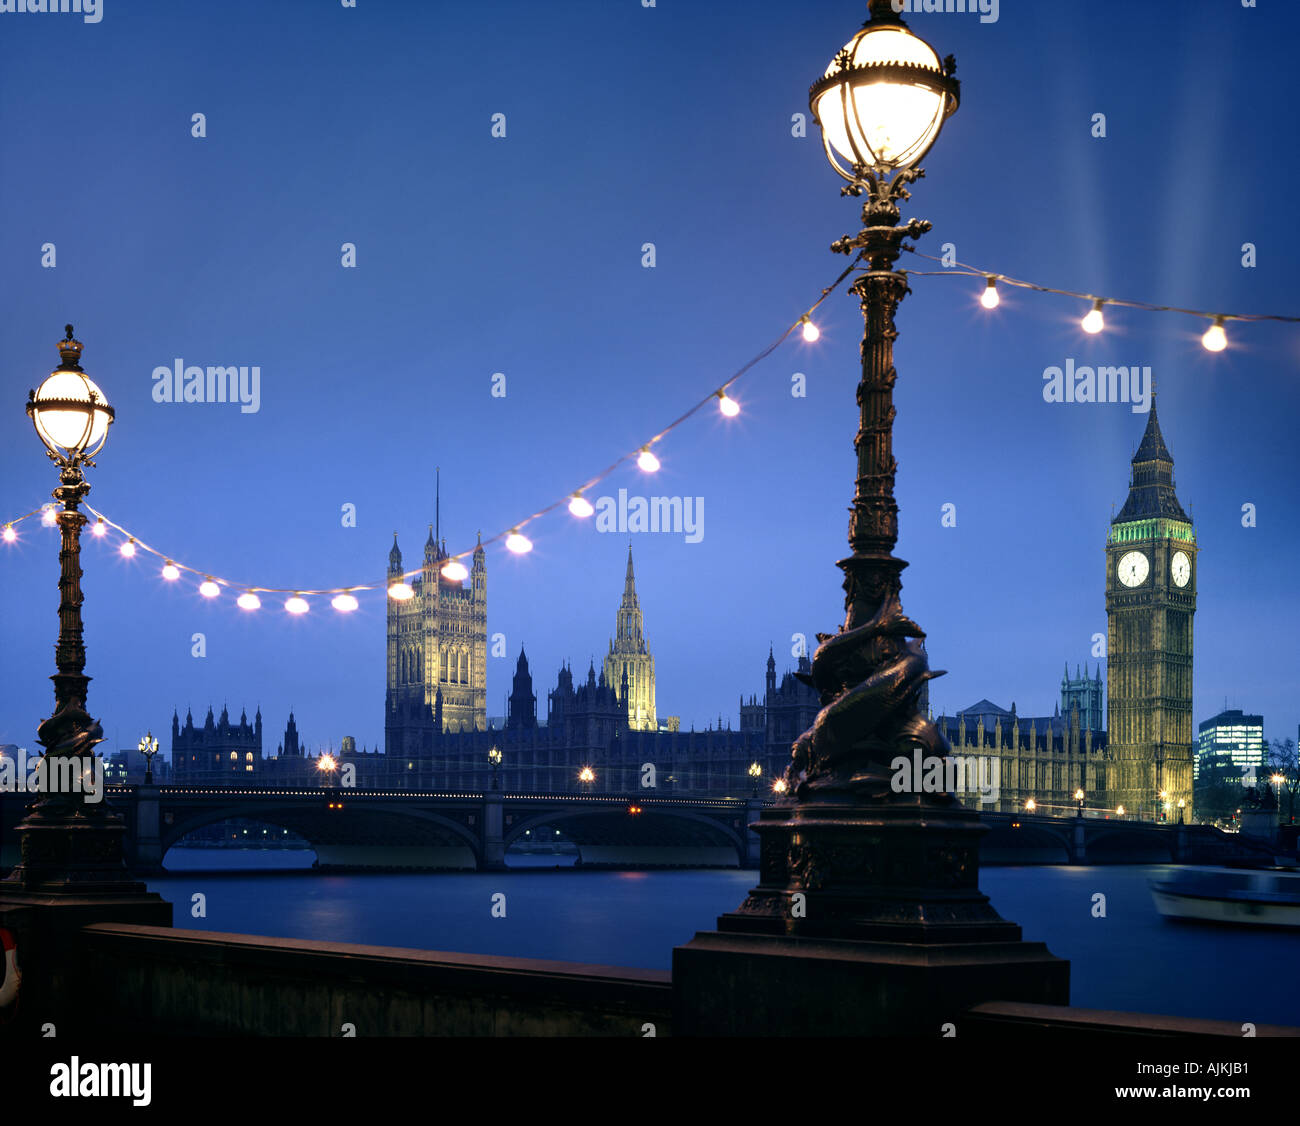 GB - LONDON: Westminster at night seen from South Bank - Stock Image